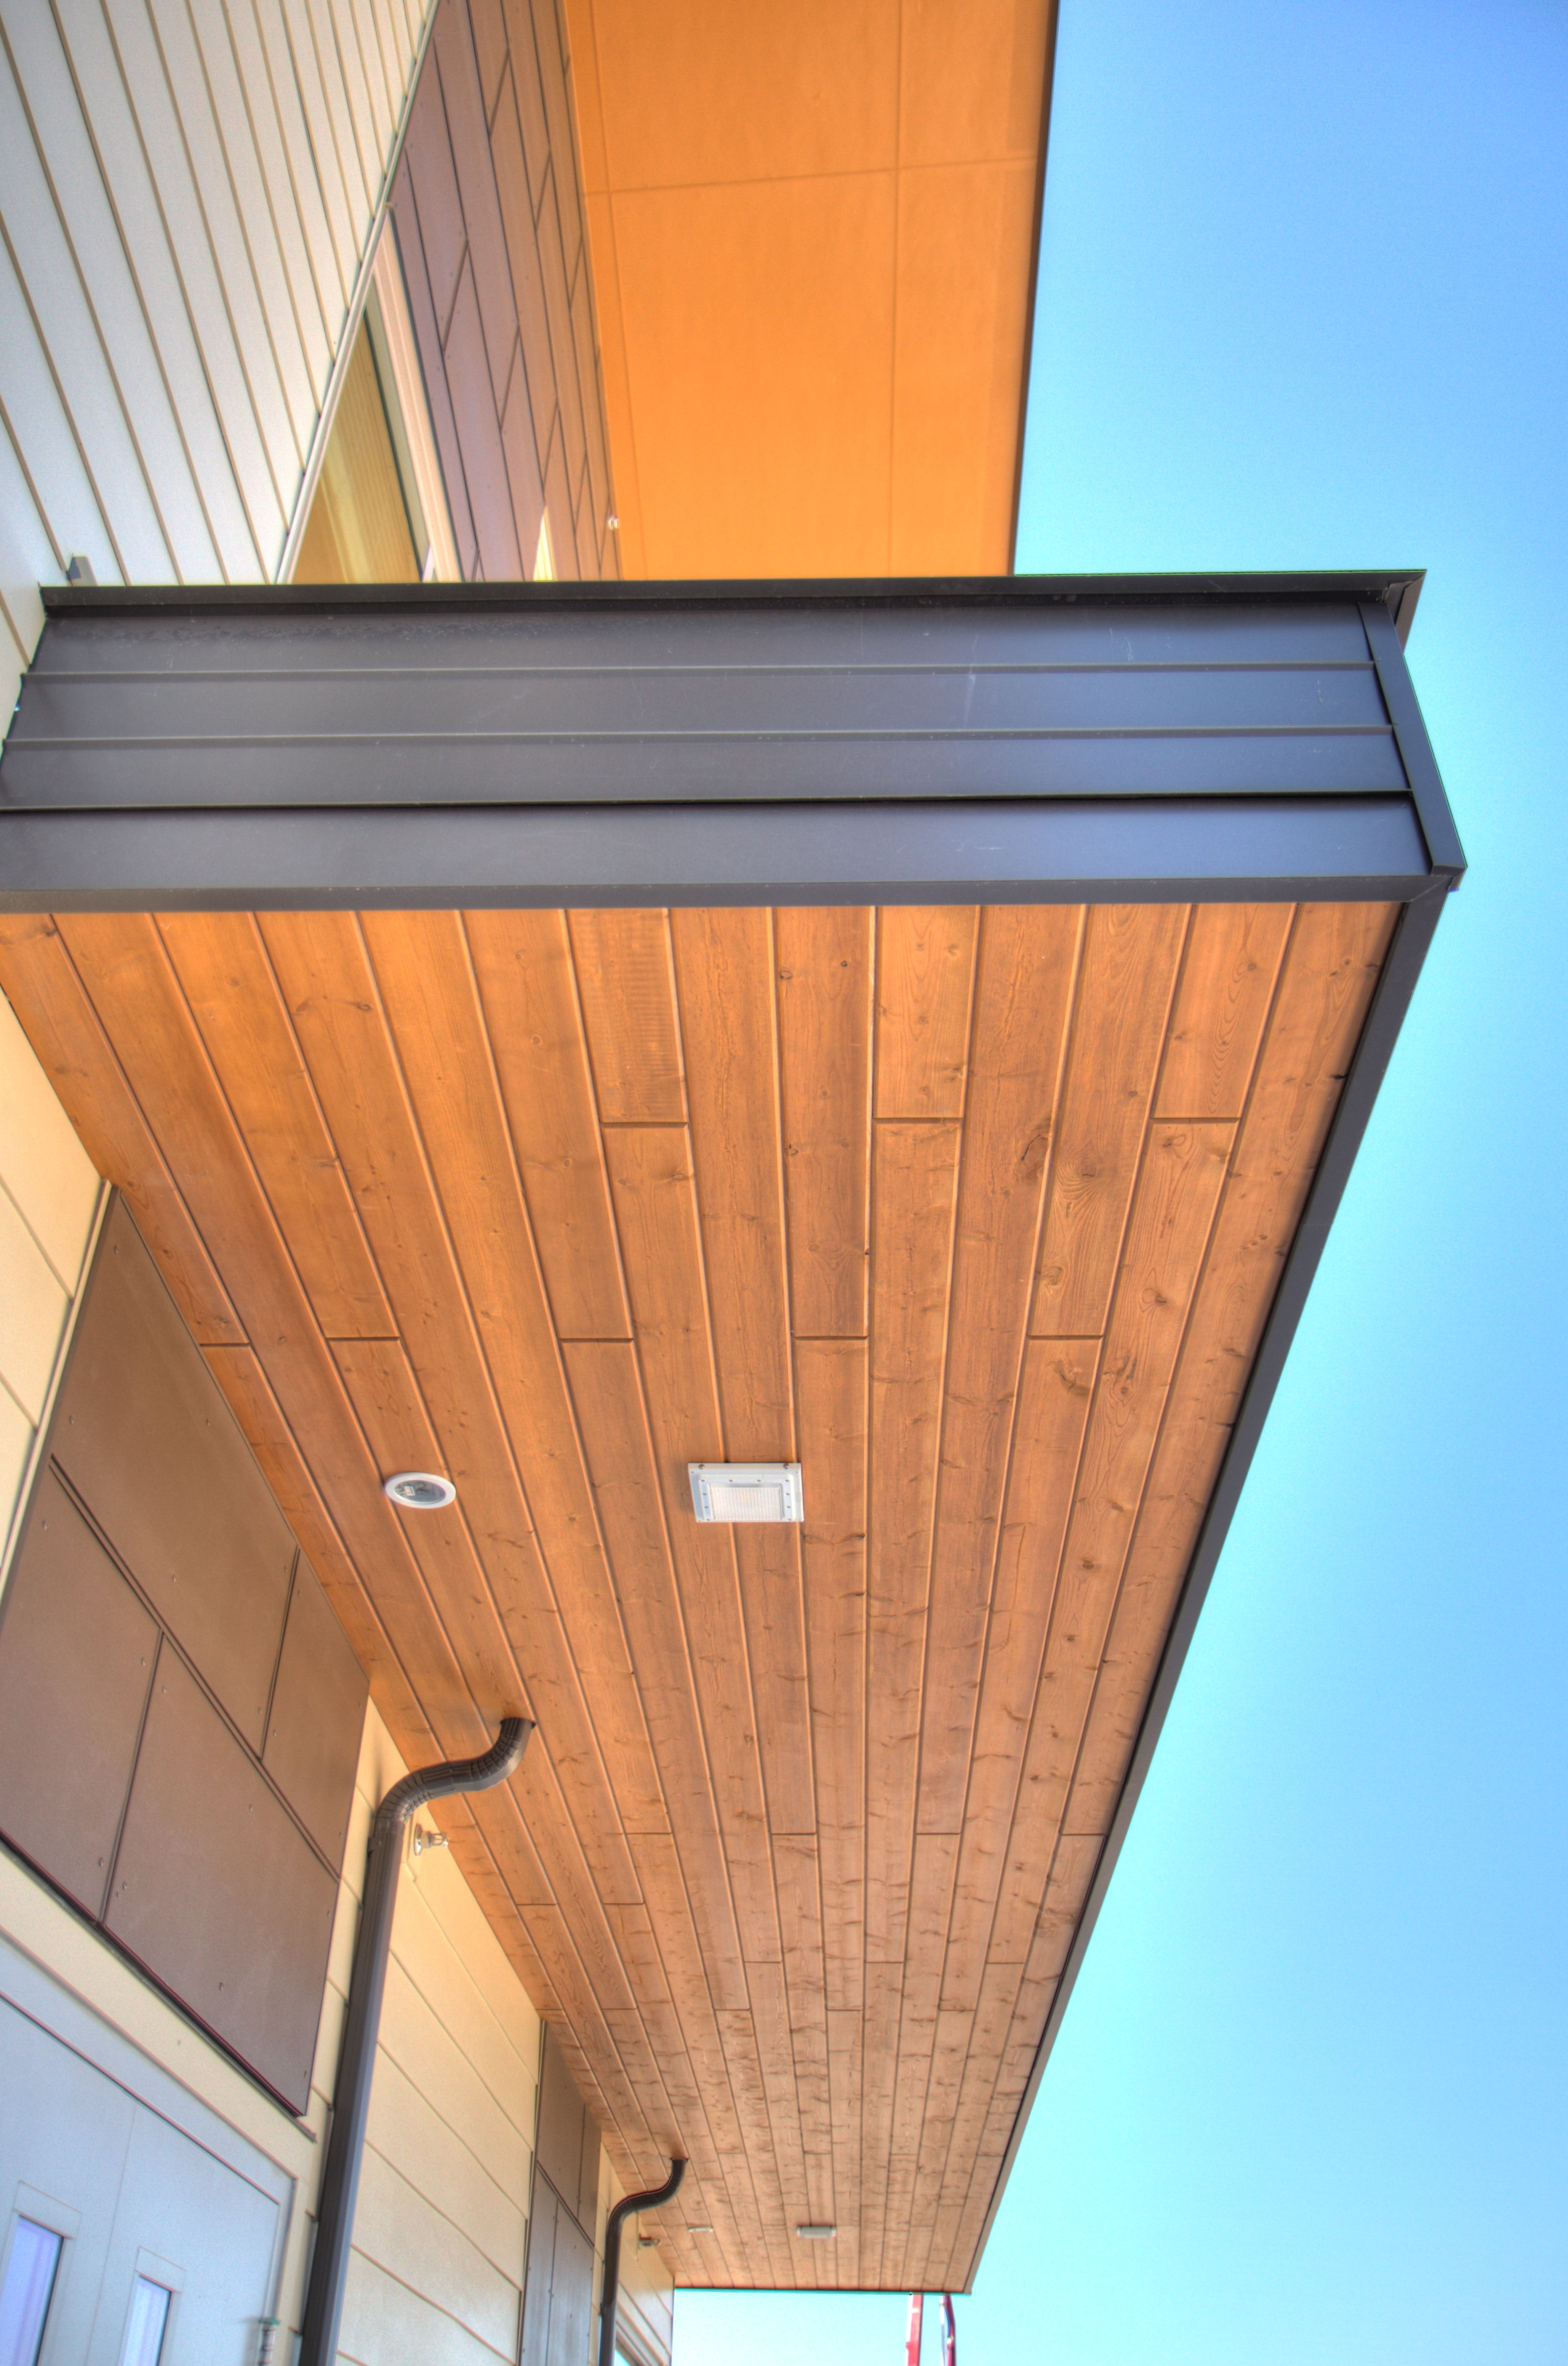 Pre Primed Trim Corners And Structural Posts Engineered Wood Siding Real Wood Wood Trim